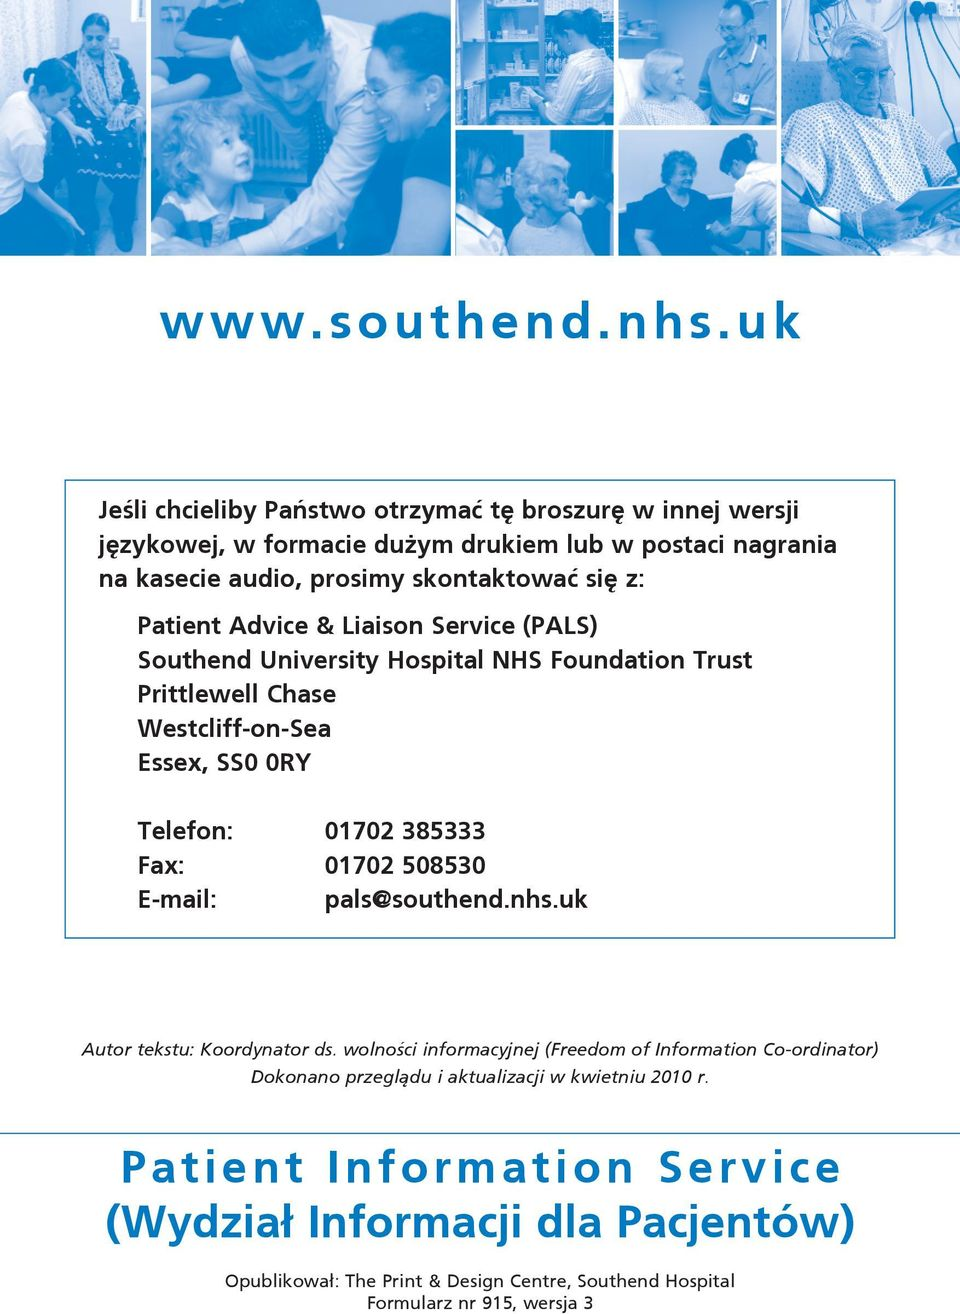 Patient Advice & Liaison Service (PALS) Southend University Hospital NHS Foundation Trust Prittlewell Chase Westcliff-on-Sea Essex, SS0 0RY Telefon: 01702 385333 Fax: